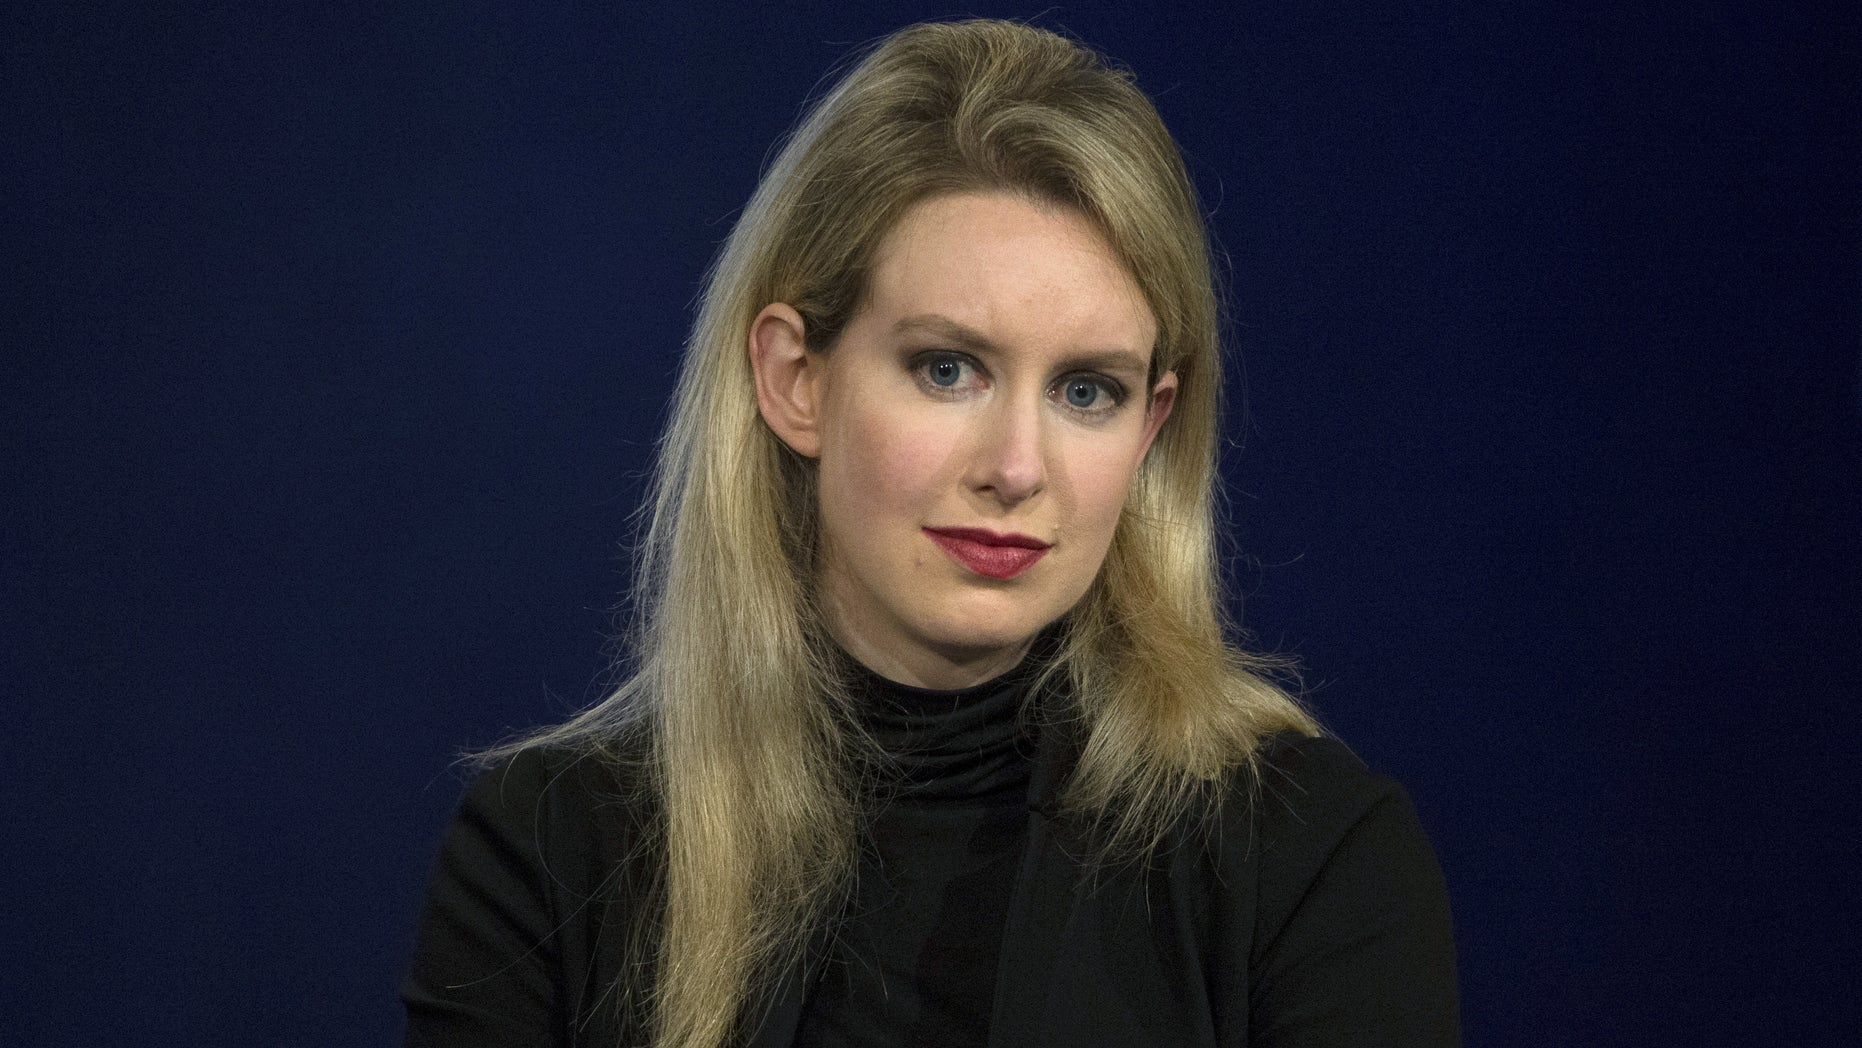 Elizabeth Holmes, CEO of Theranos, attends a panel discussion during the Clinton Global Initiative's annual meeting in New York, September 29, 2015.  REUTERS/Brendan McDermid/File Photo - RTX2KCH3